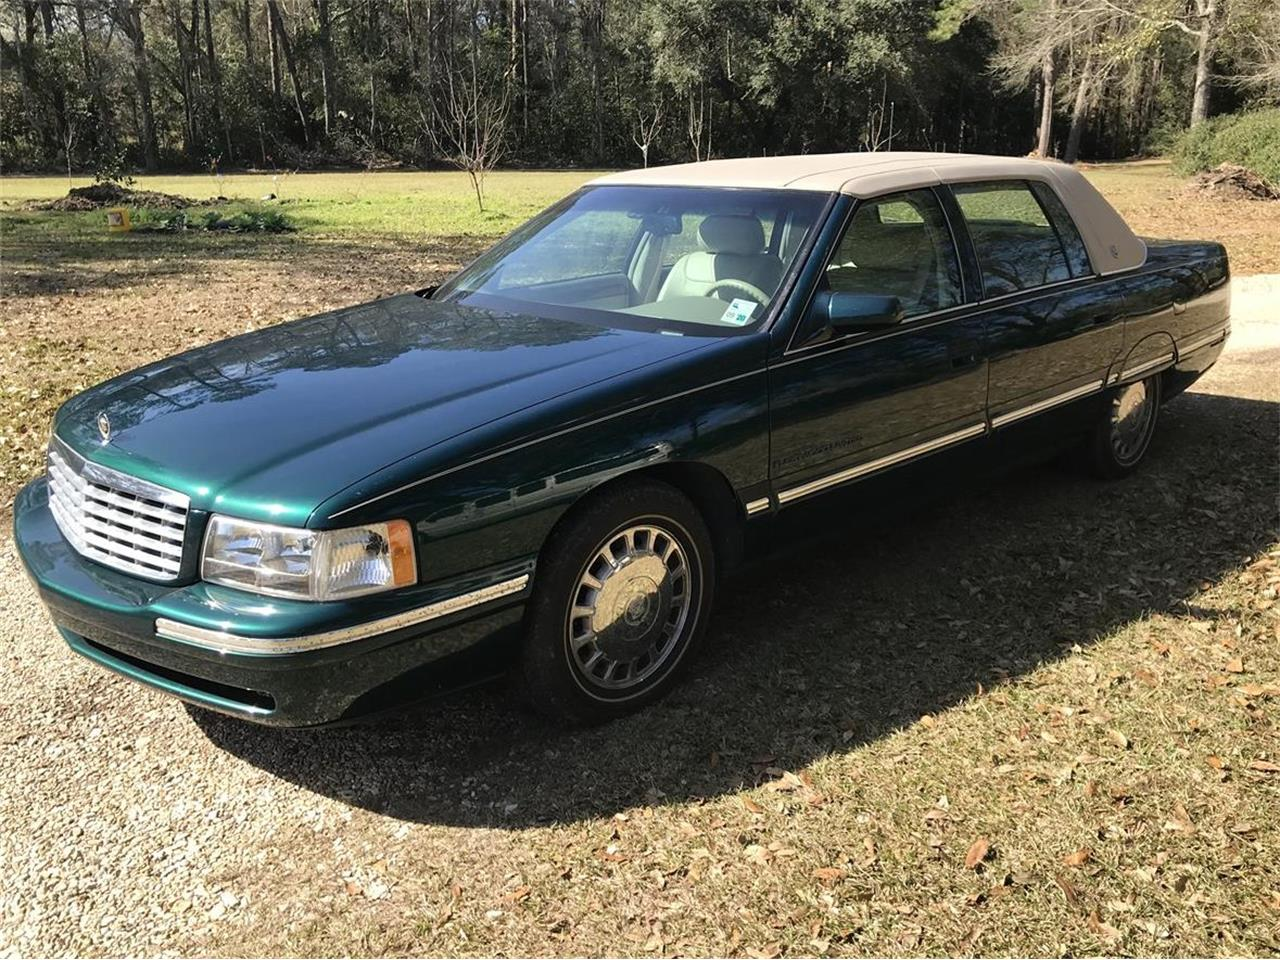 1999 Cadillac Brougham d'Elegance (CC-1356009) for sale in Hammond, Louisiana